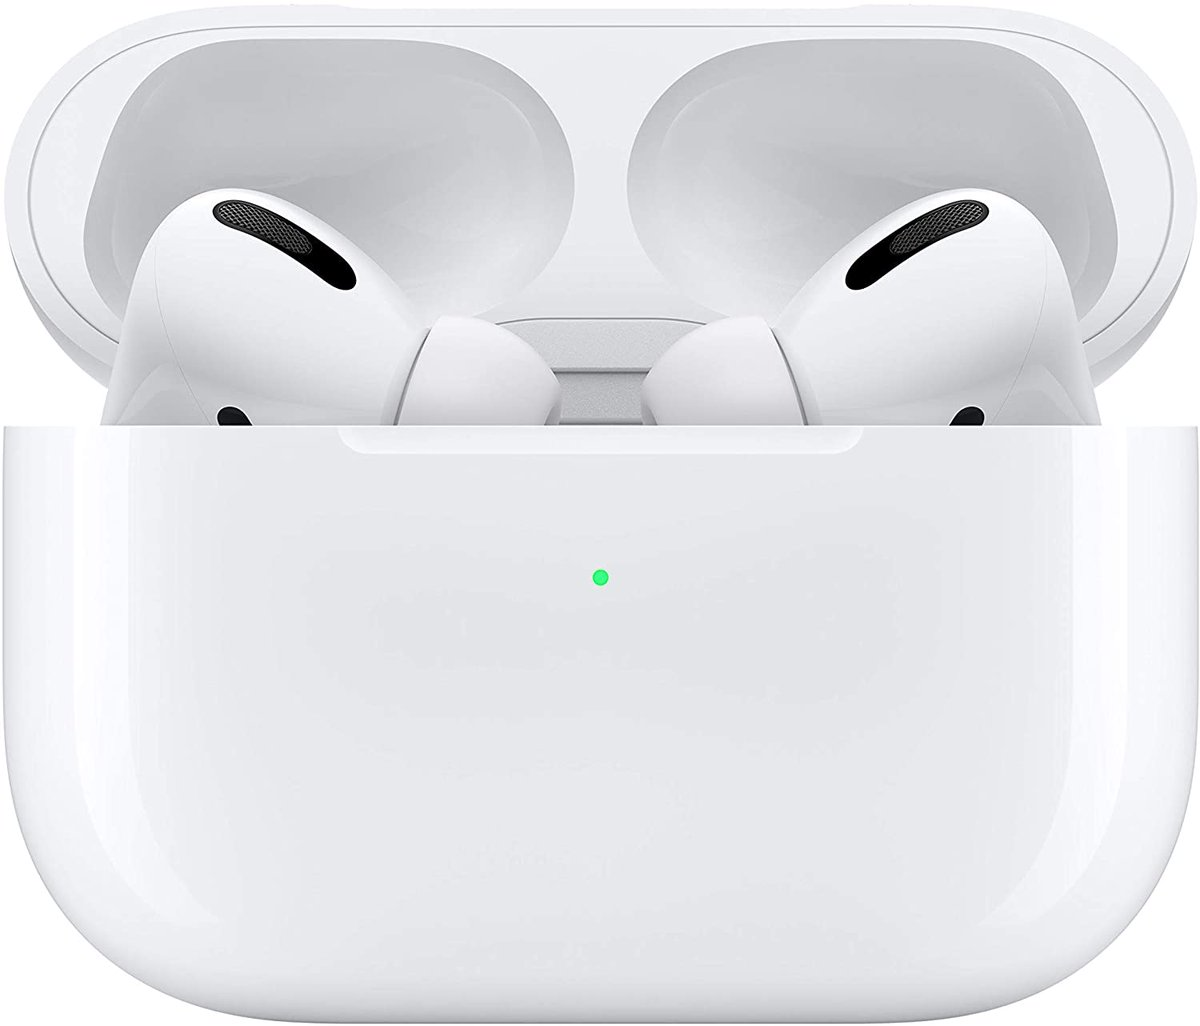 LIMITED TIMEEE!!  NEW Apple Airpods Pros for $219.99!!!  -Under retail, retail $250!!!!  https://t.co/CWCWdBvvNa https://t.co/8I6EhqhJ7N